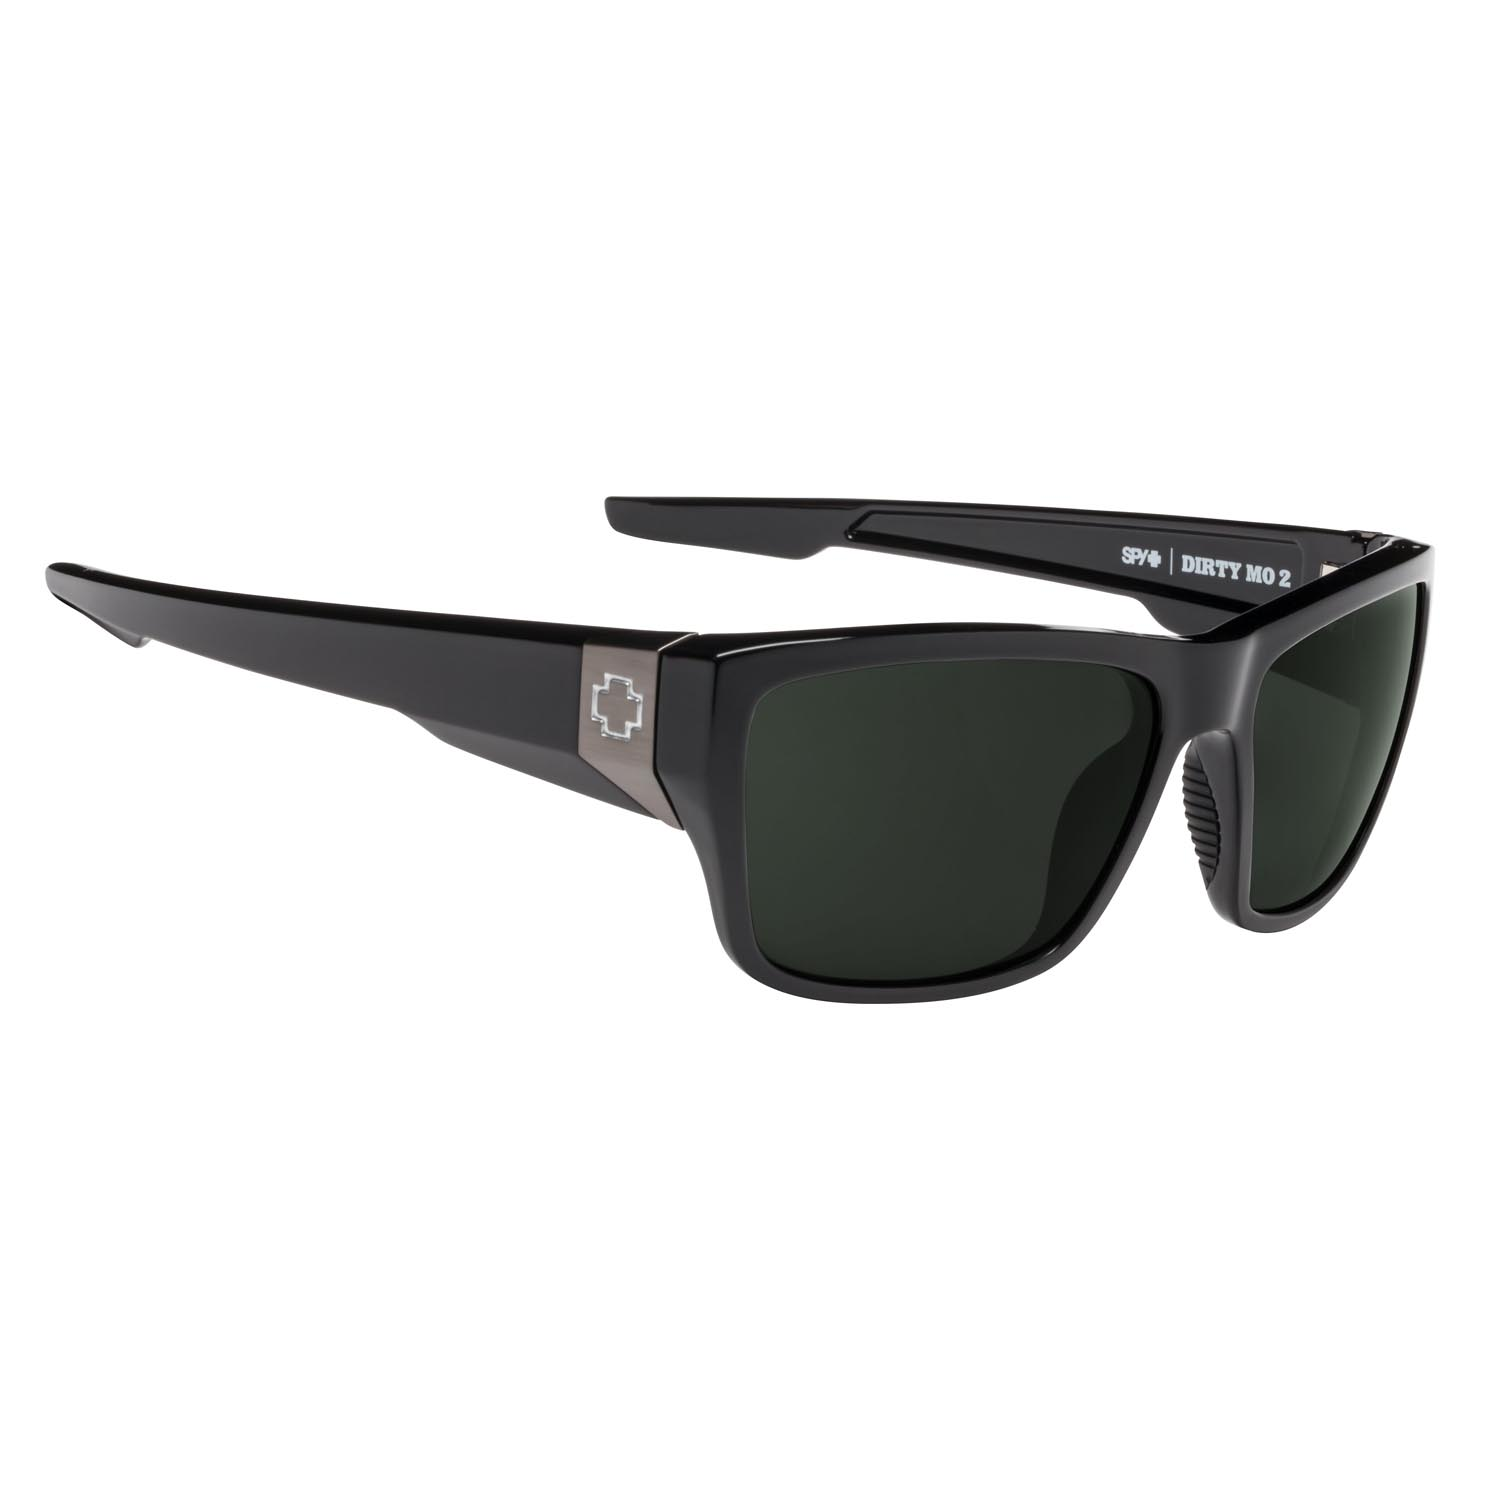 Spy Sunglasses Dirty Mo 2 in Shiny Black with Gray lenses